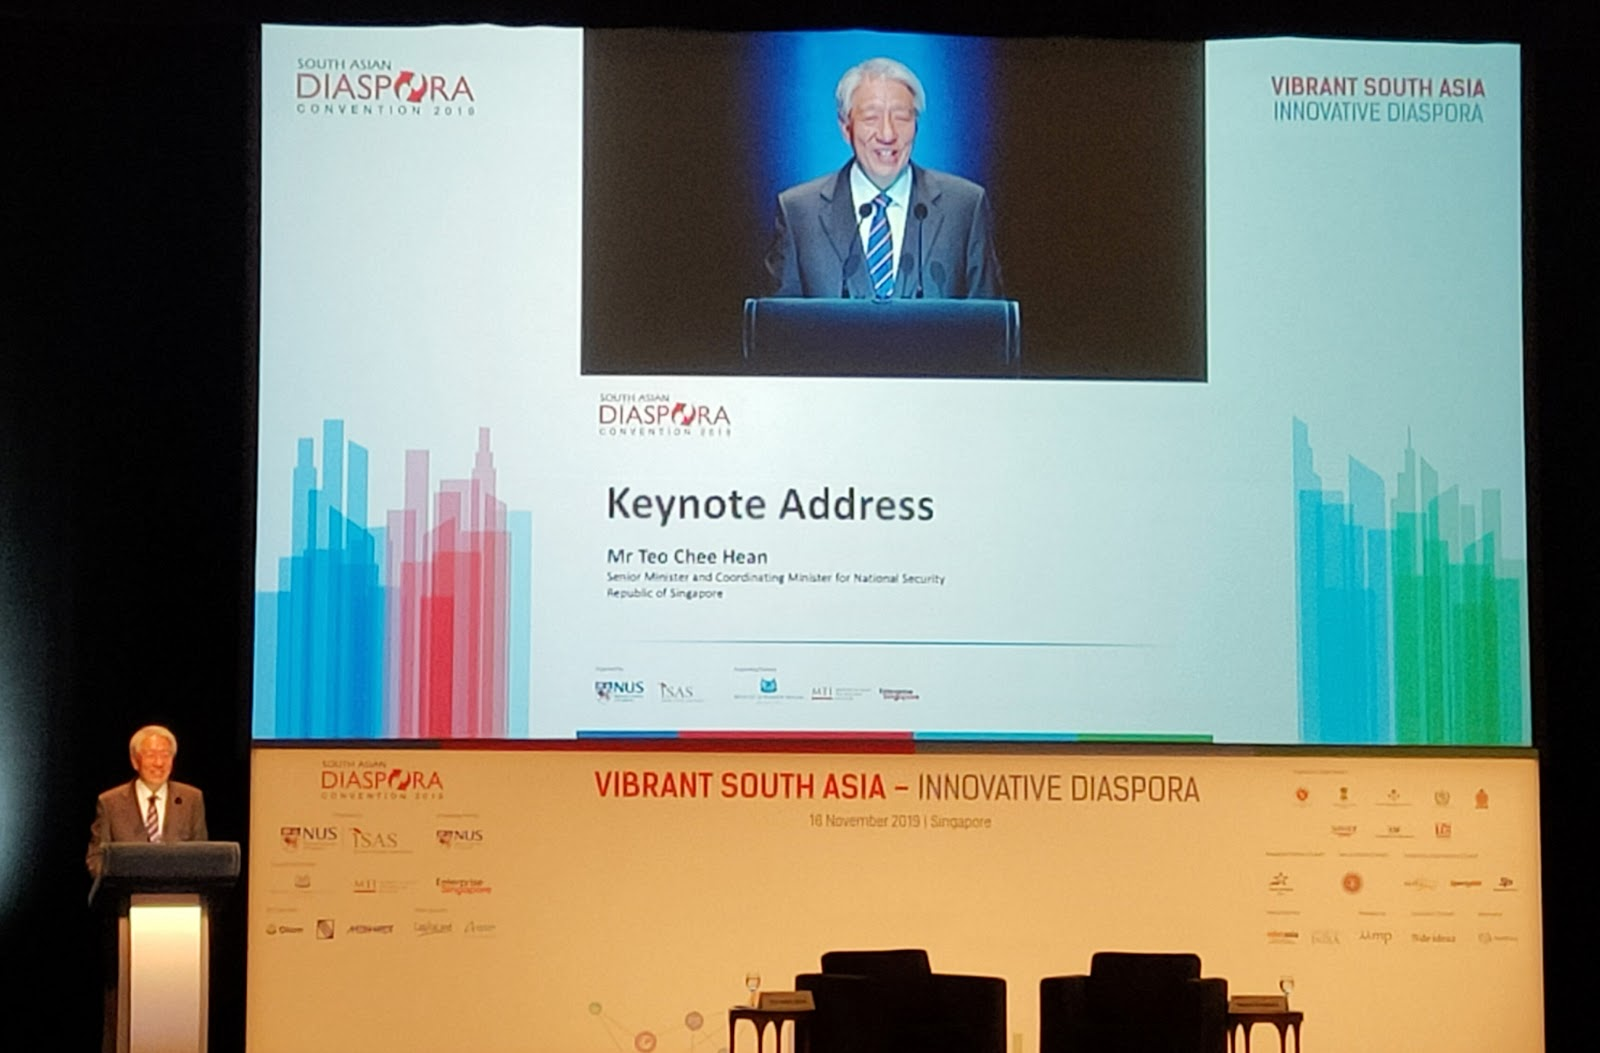 SM Teo Chee Hean in his keynote touched upon gap between education and employment, the opportunities and exposure available and said the quality of experience of interning abroad is more important than numbers. Photo: Connected to India